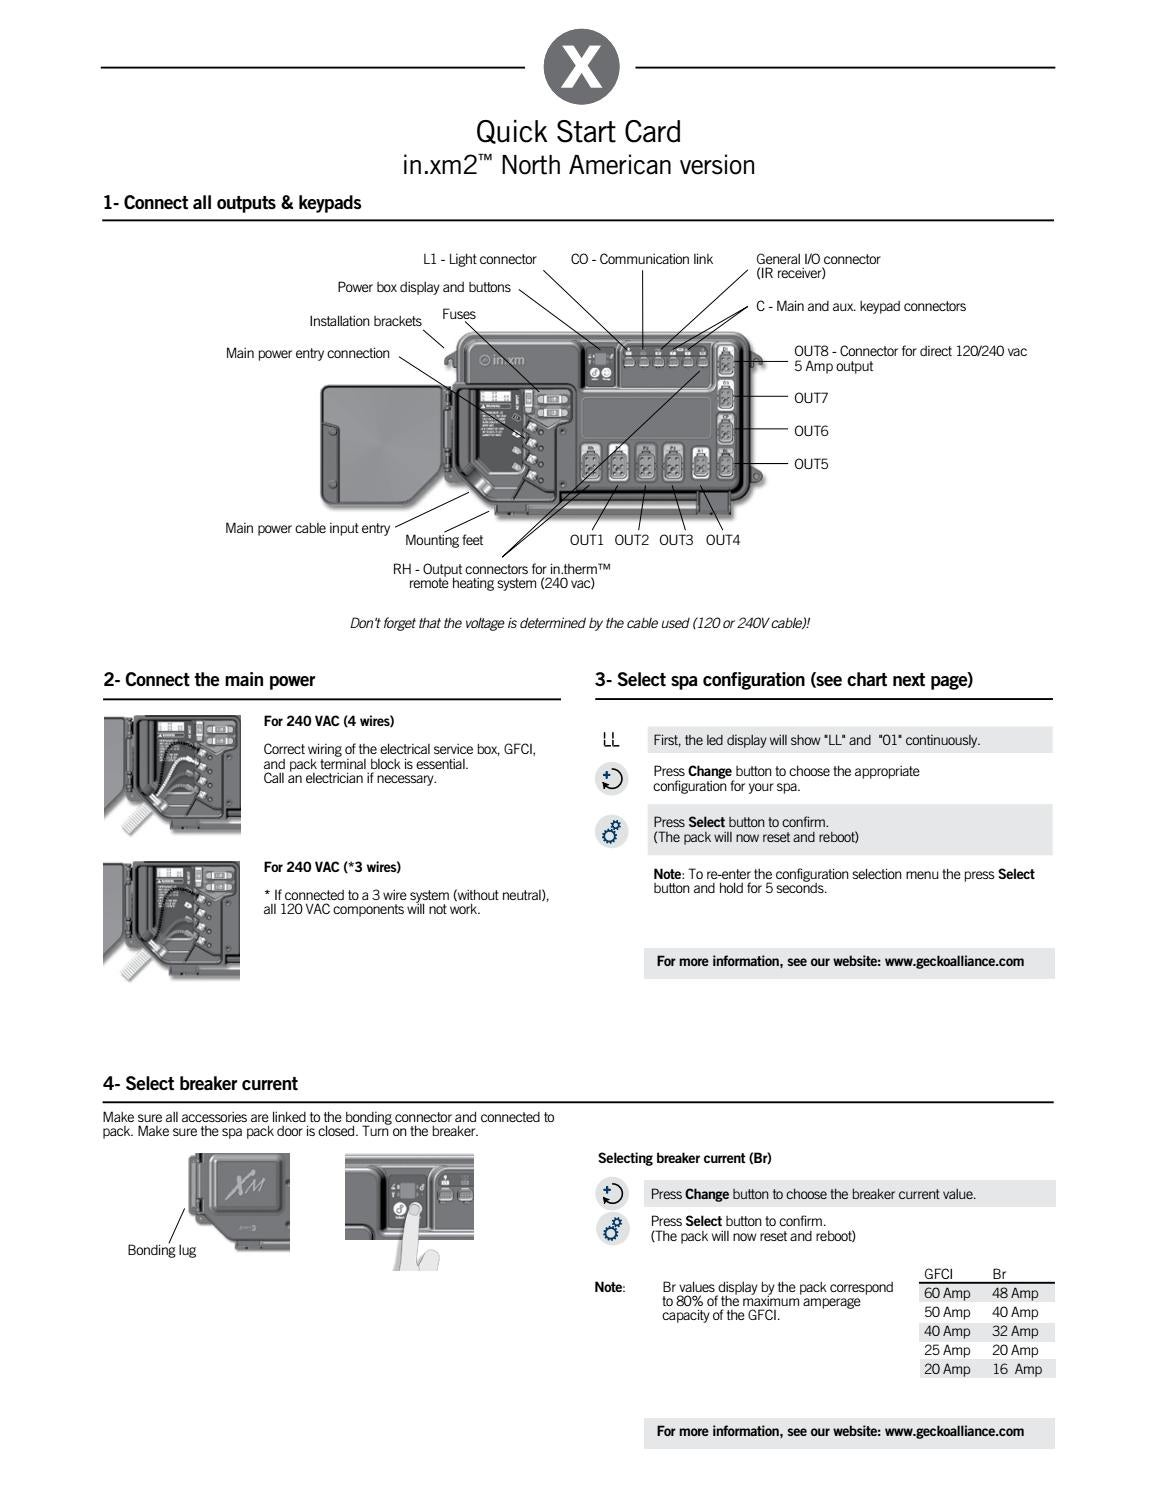 Inxm2 Control System Quick Start Card By Gecko Marketing Issuu Ground Fault Breaker Wiring Diagram For Spas